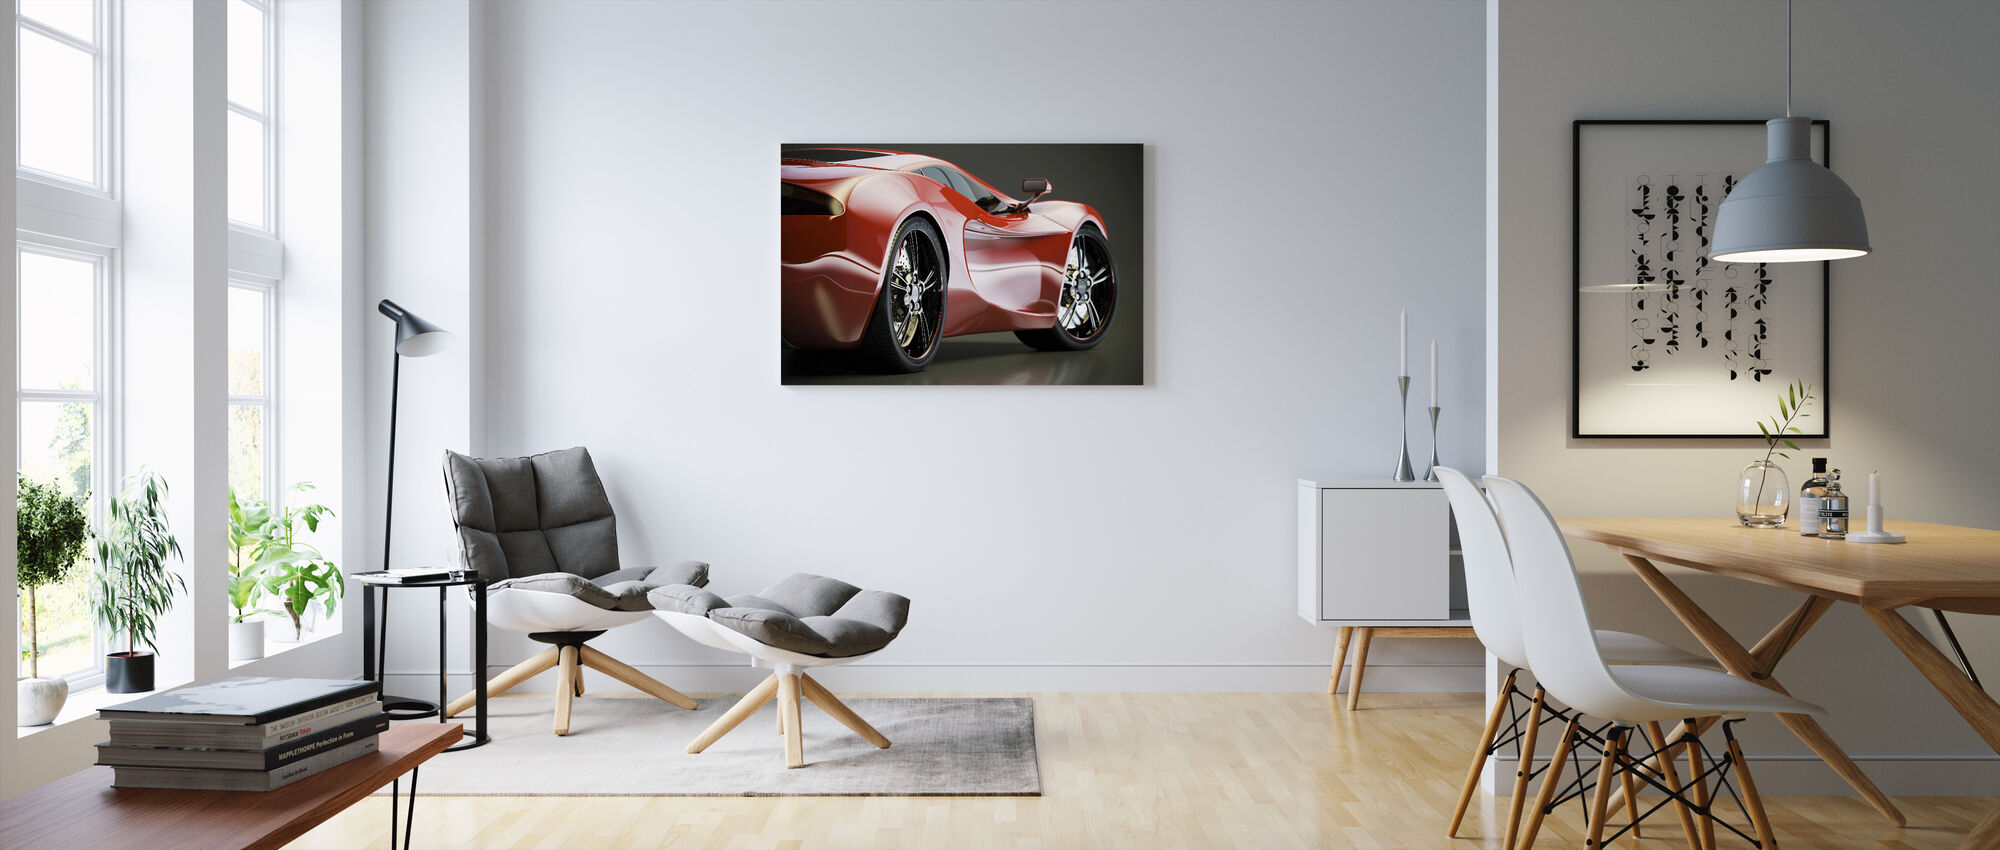 Sports Car - Canvas print - Living Room